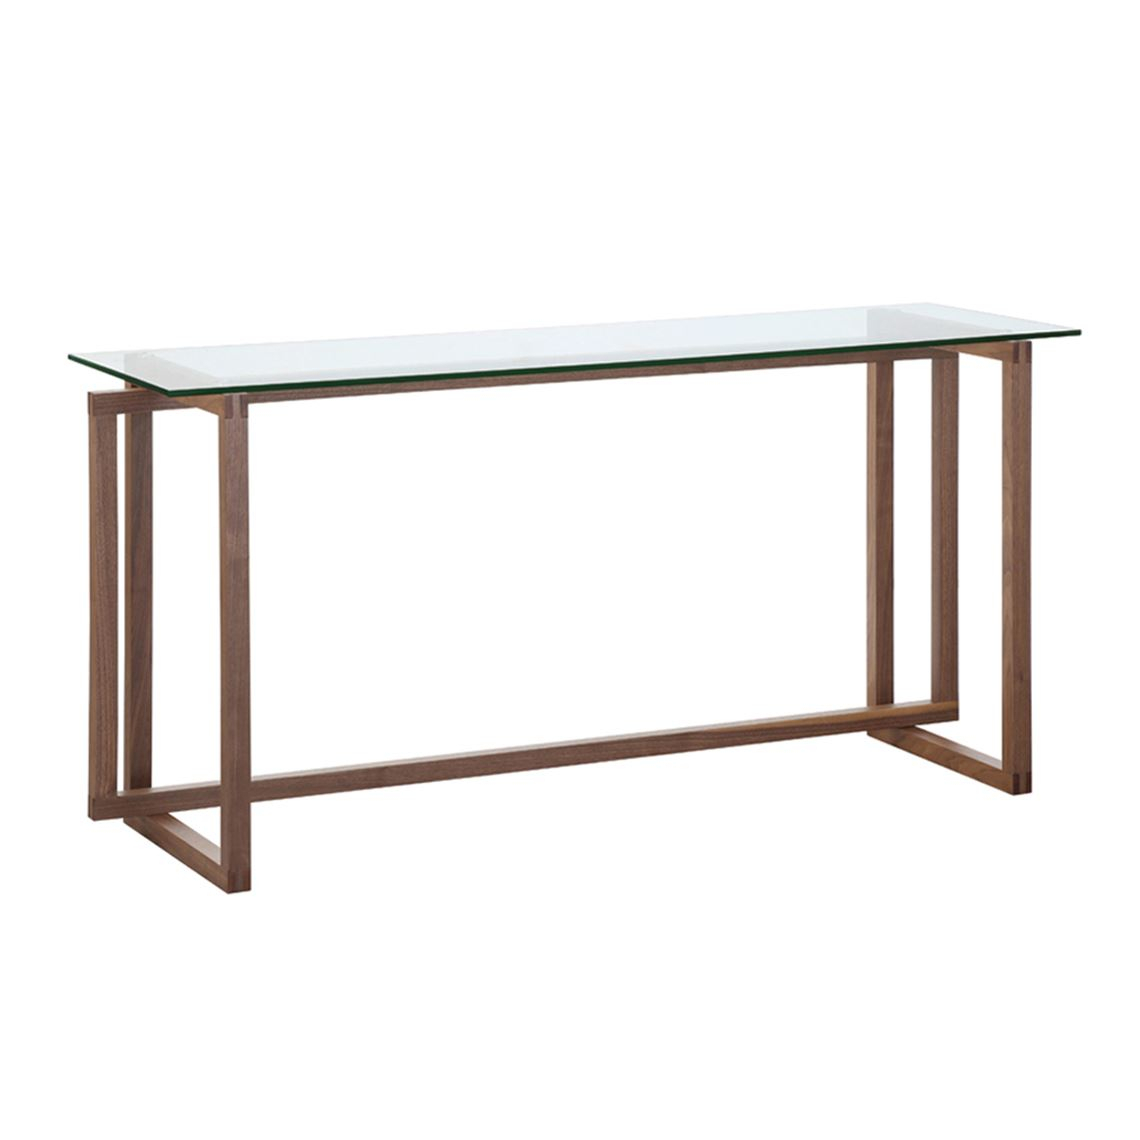 Kyra Console Table | Freedom Intended For Kyra Console Tables (Gallery 1 of 30)